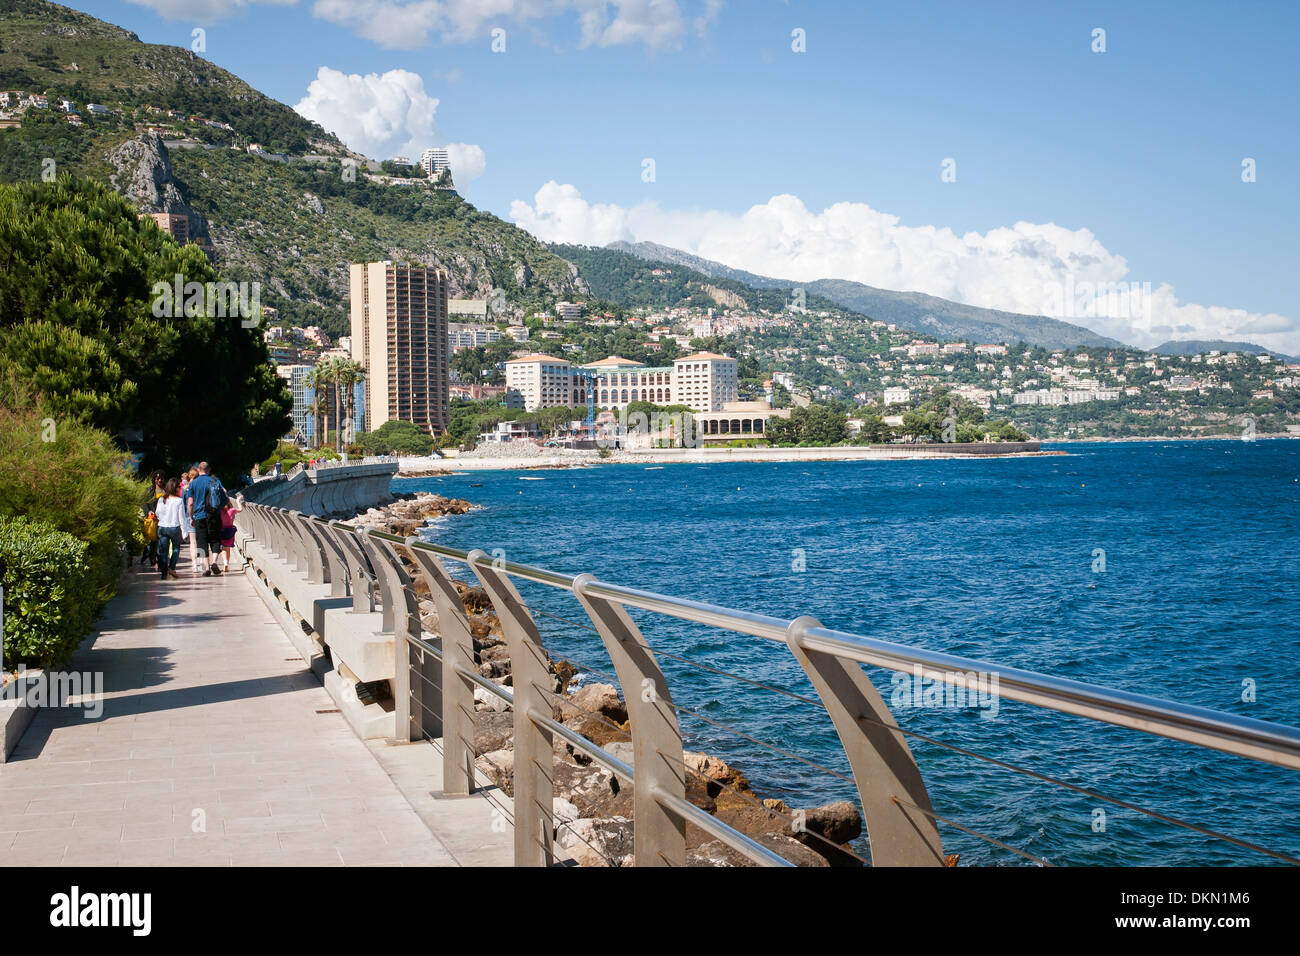 Seaside promenade, Monaco, waterfront, sovereign city-state, French Riviera, Western Europe. Stock Photo